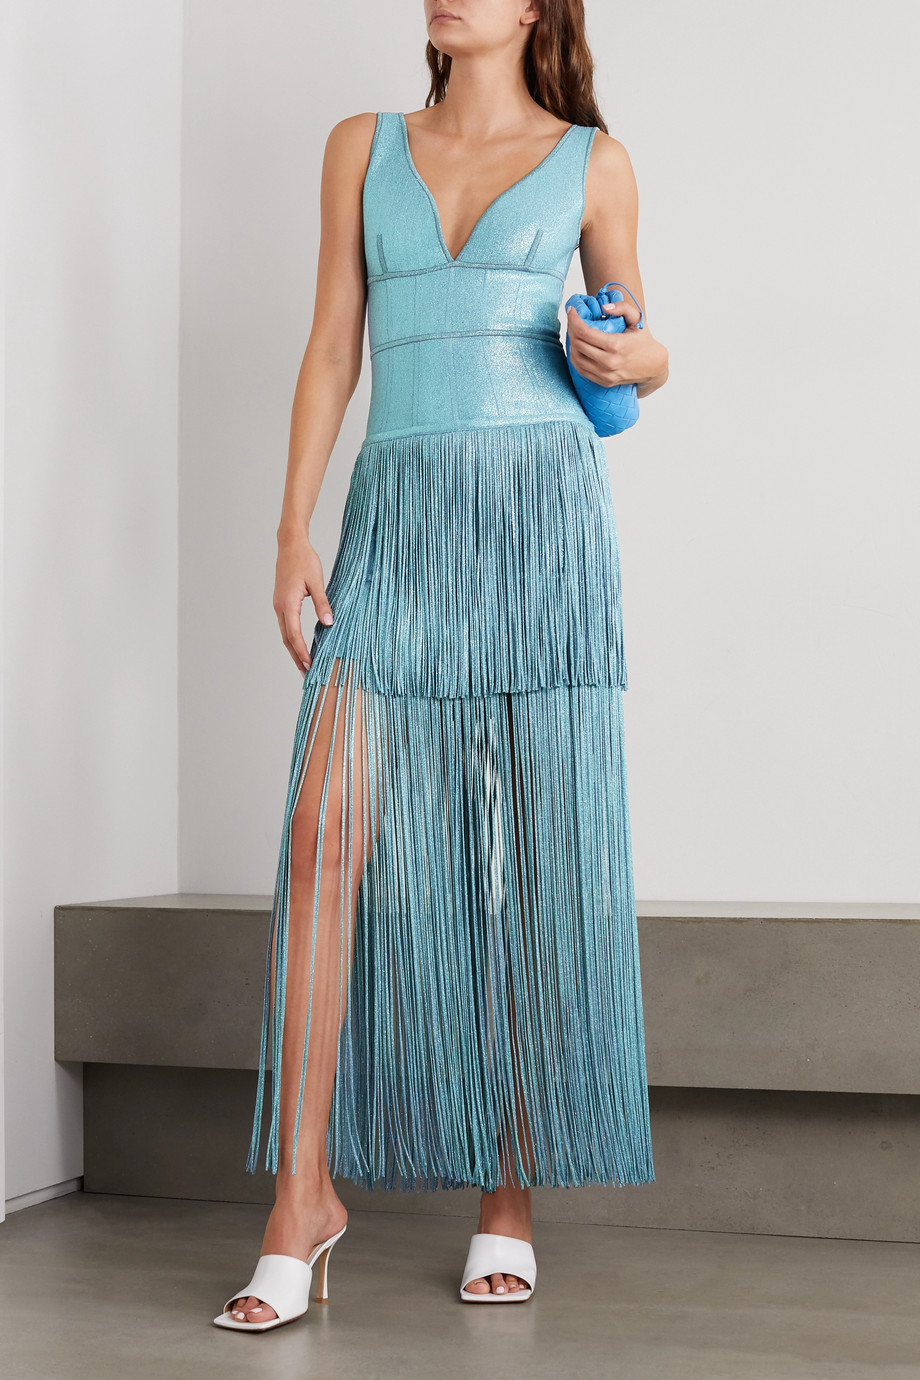 Hervé Léger Fringed metallic bandage gown